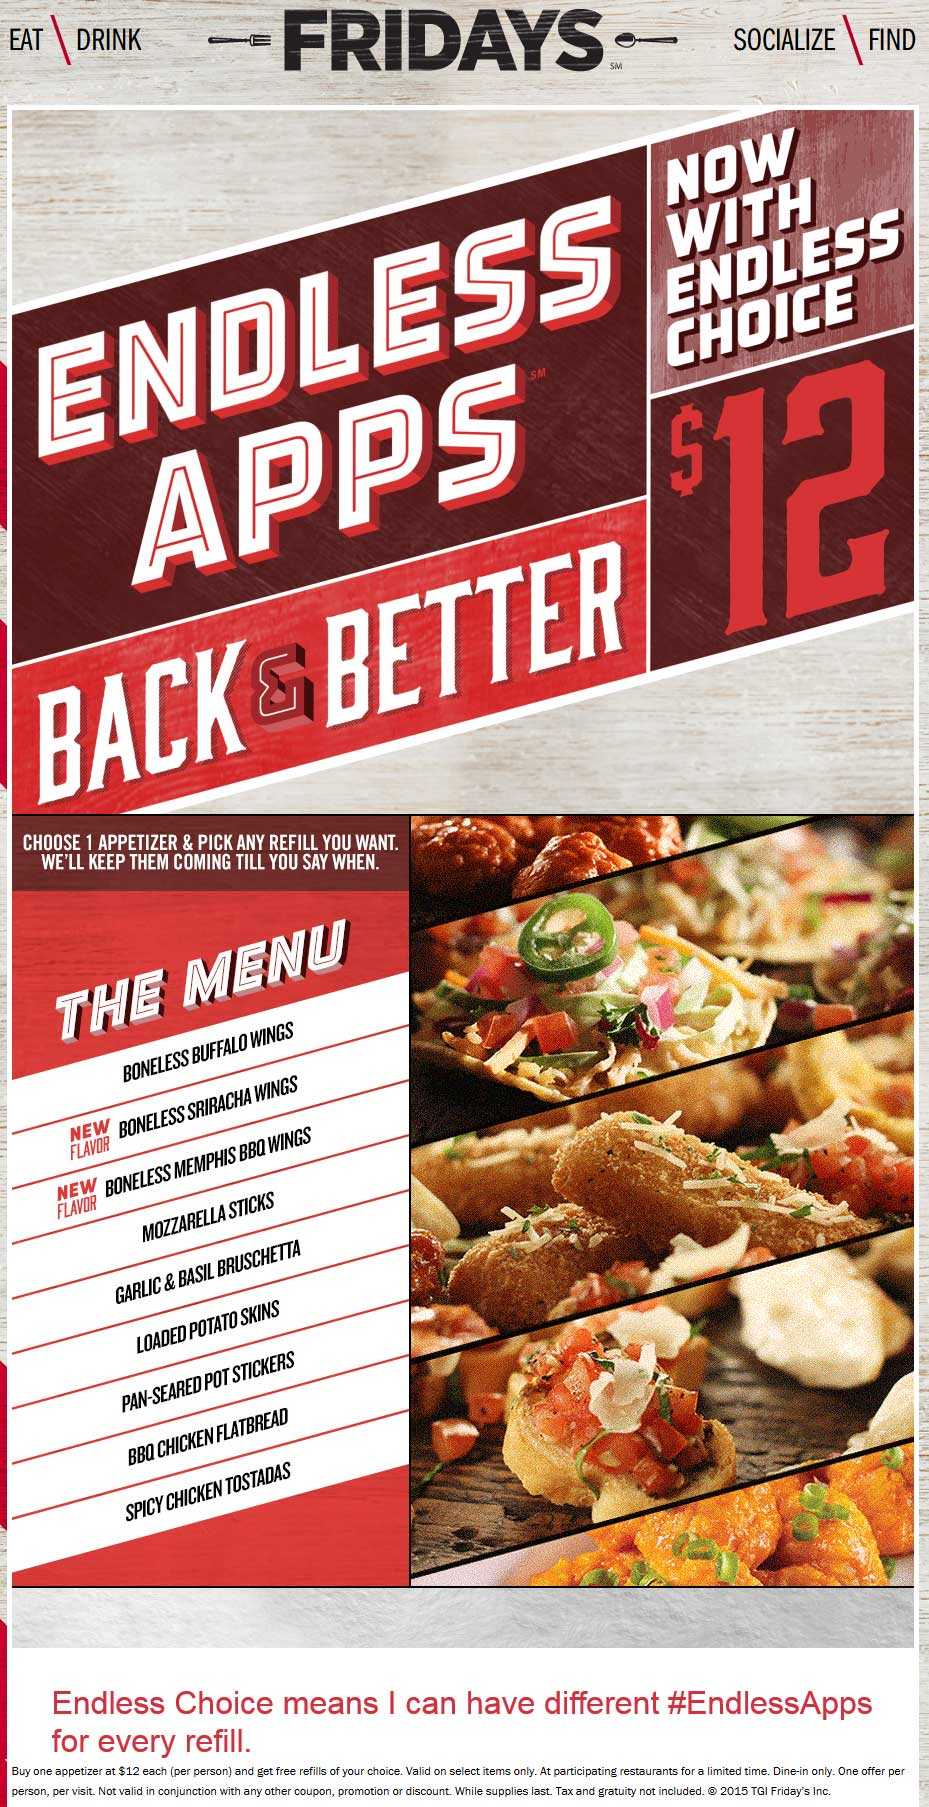 TGI Fridays Coupon April 2017 Interchangeable bottomless appetizers for $12 with your entree at TGI Fridays